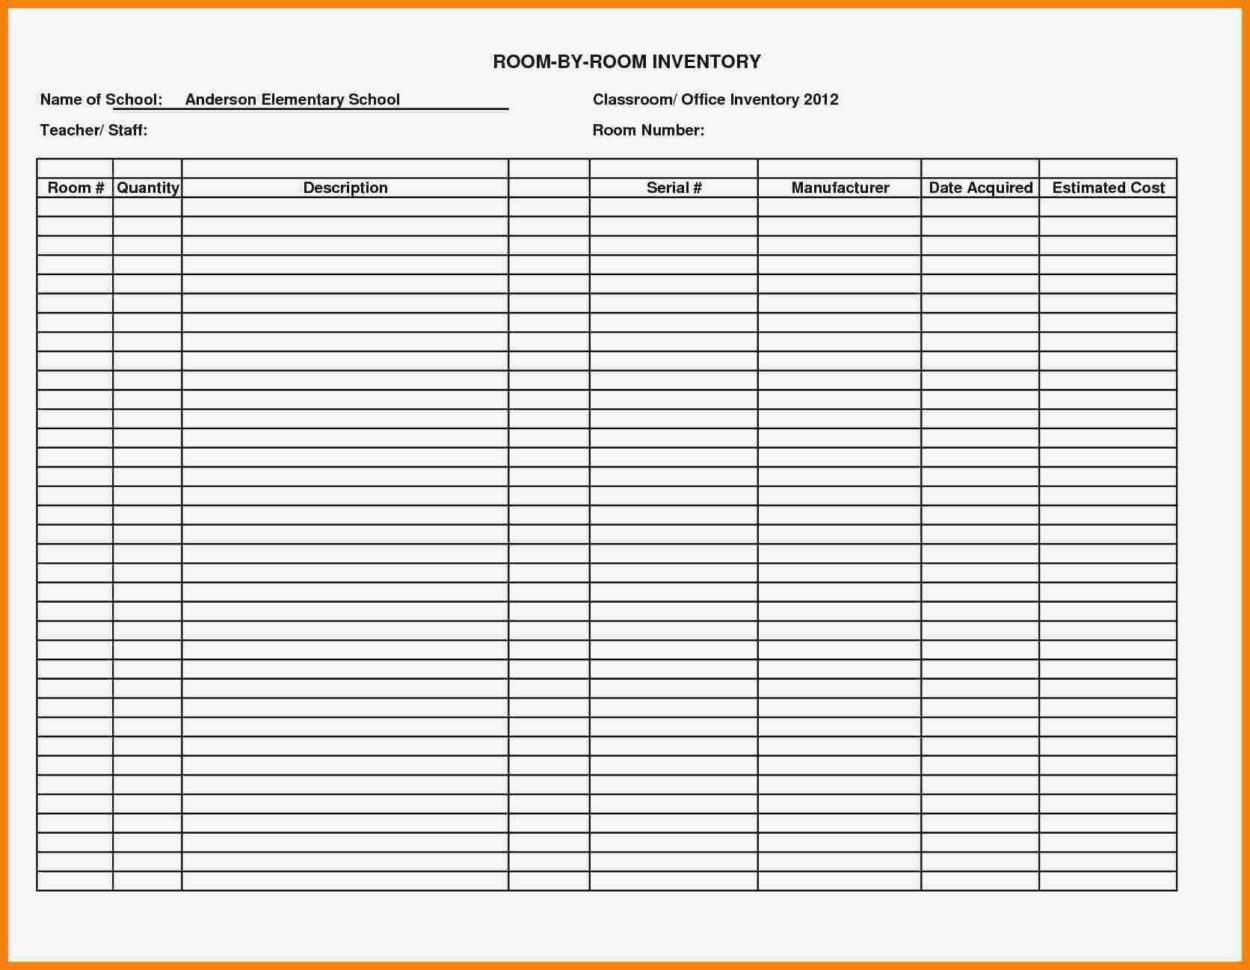 Journal Spreadsheet Template Intended For Journal Entry Template Excel Best Of New Stock Transfer Ledger